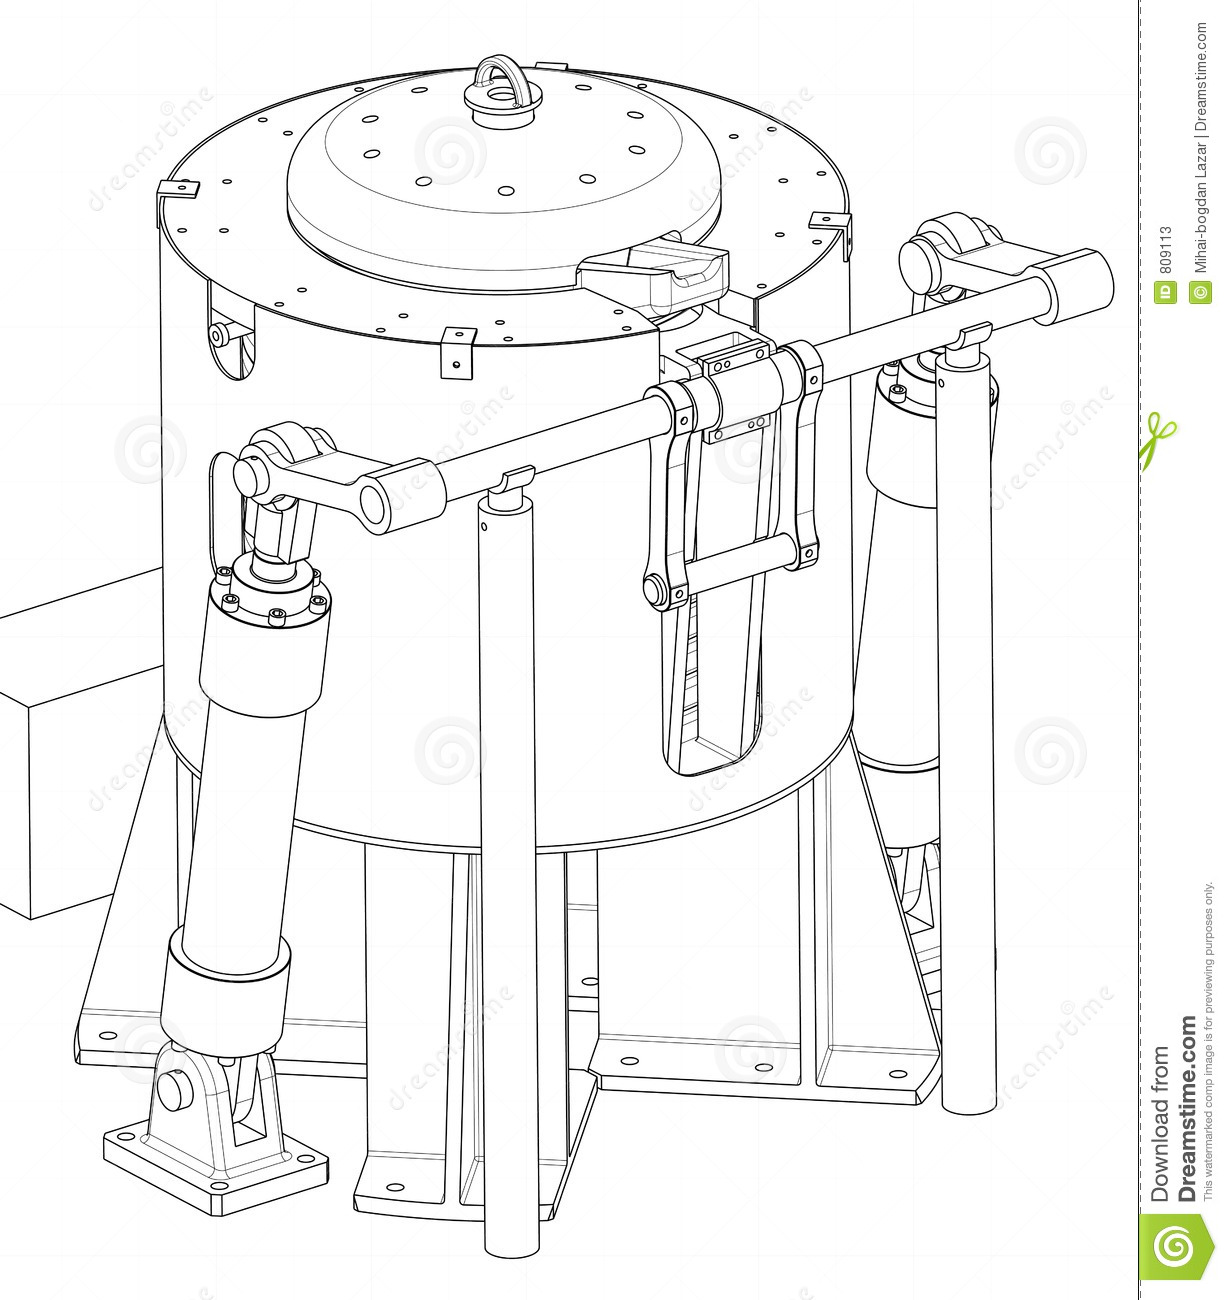 Drawing of a device